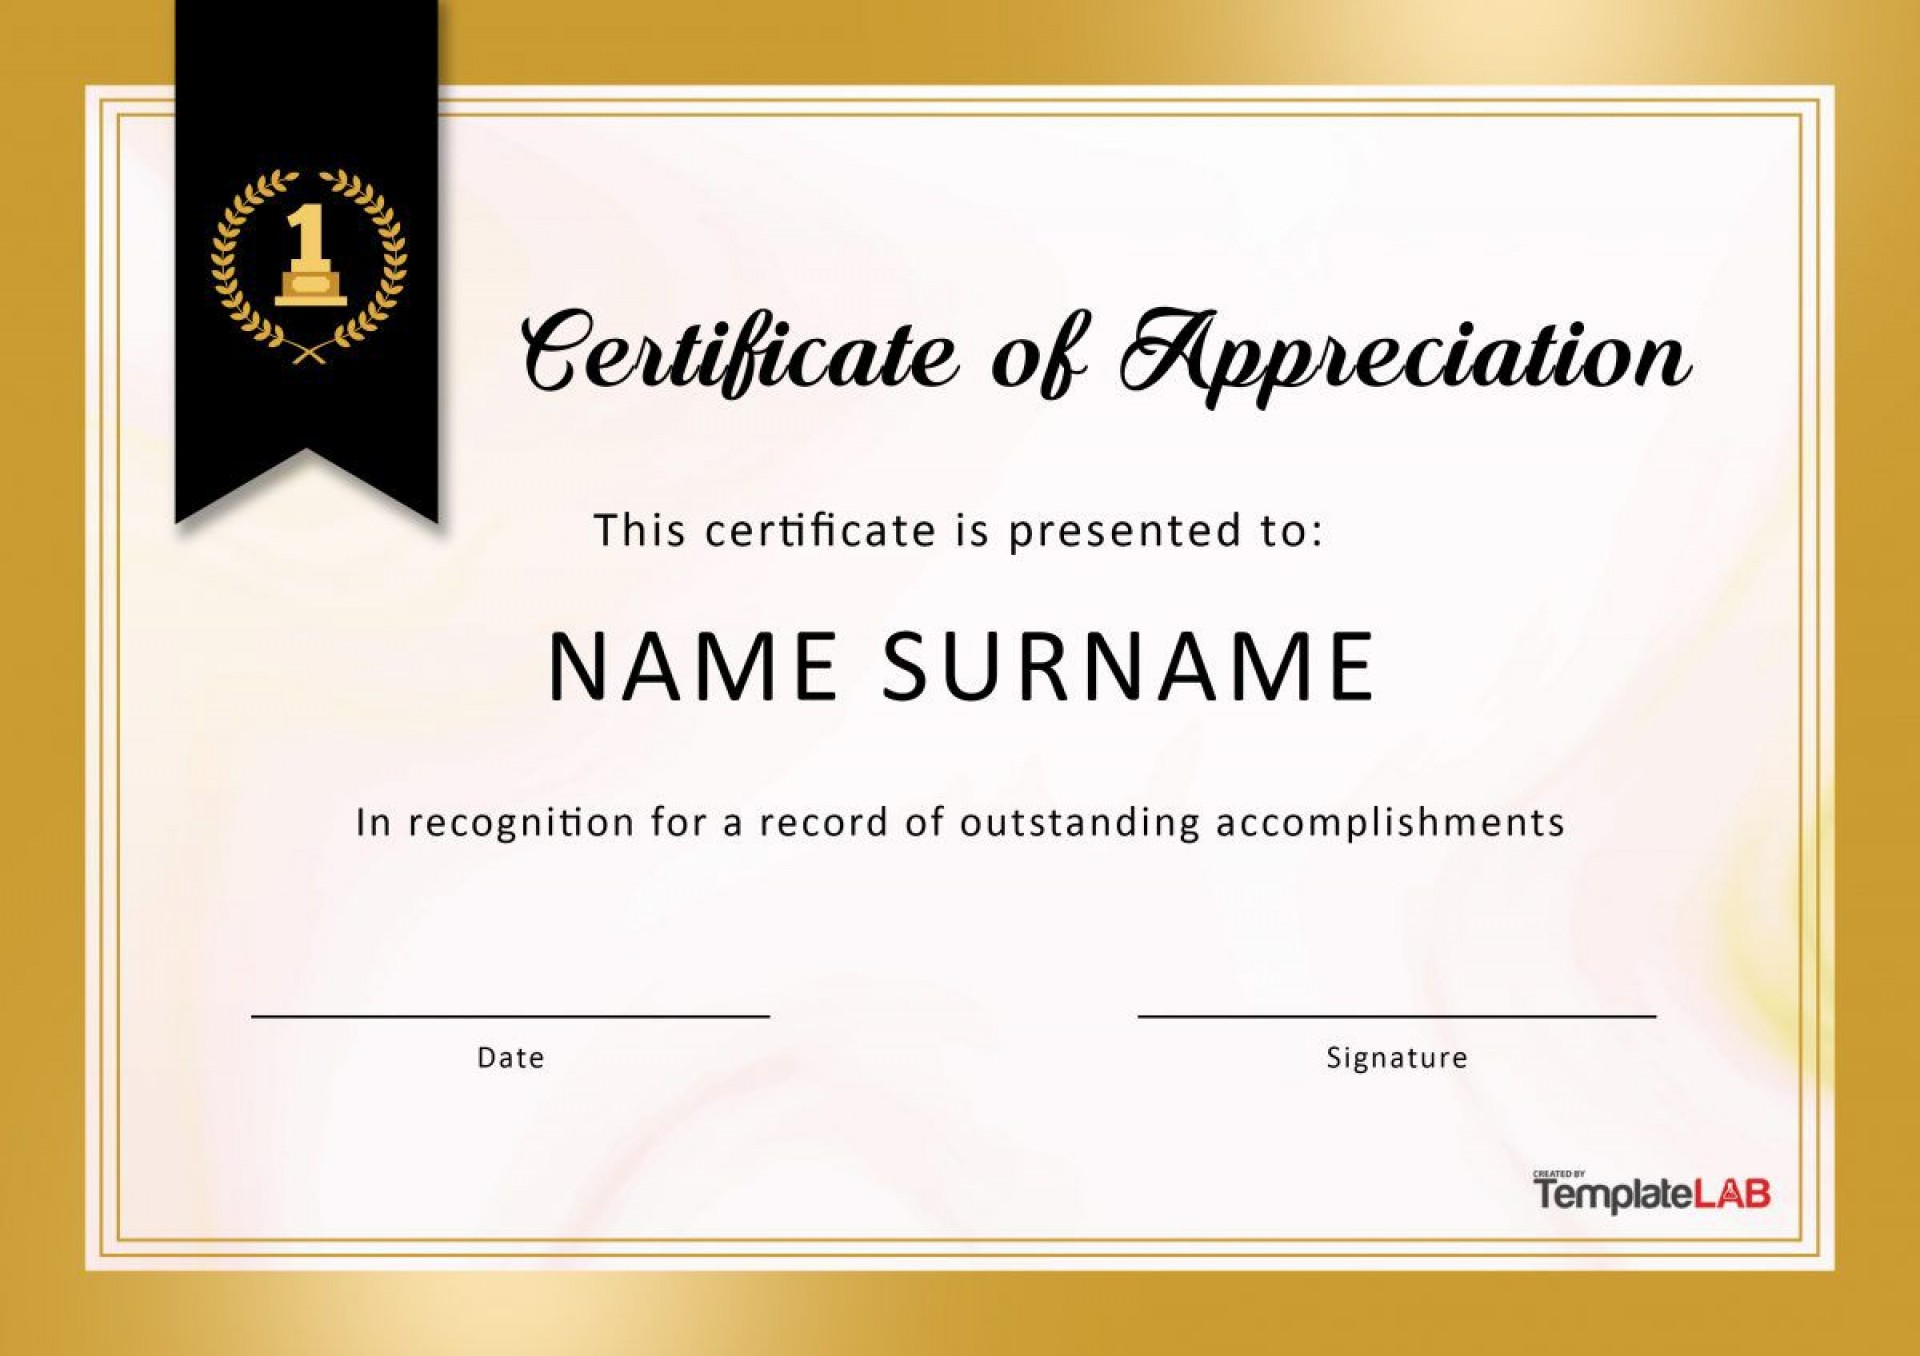 009 Striking Certificate Of Recognition Template Word Example  Award Microsoft Free1920